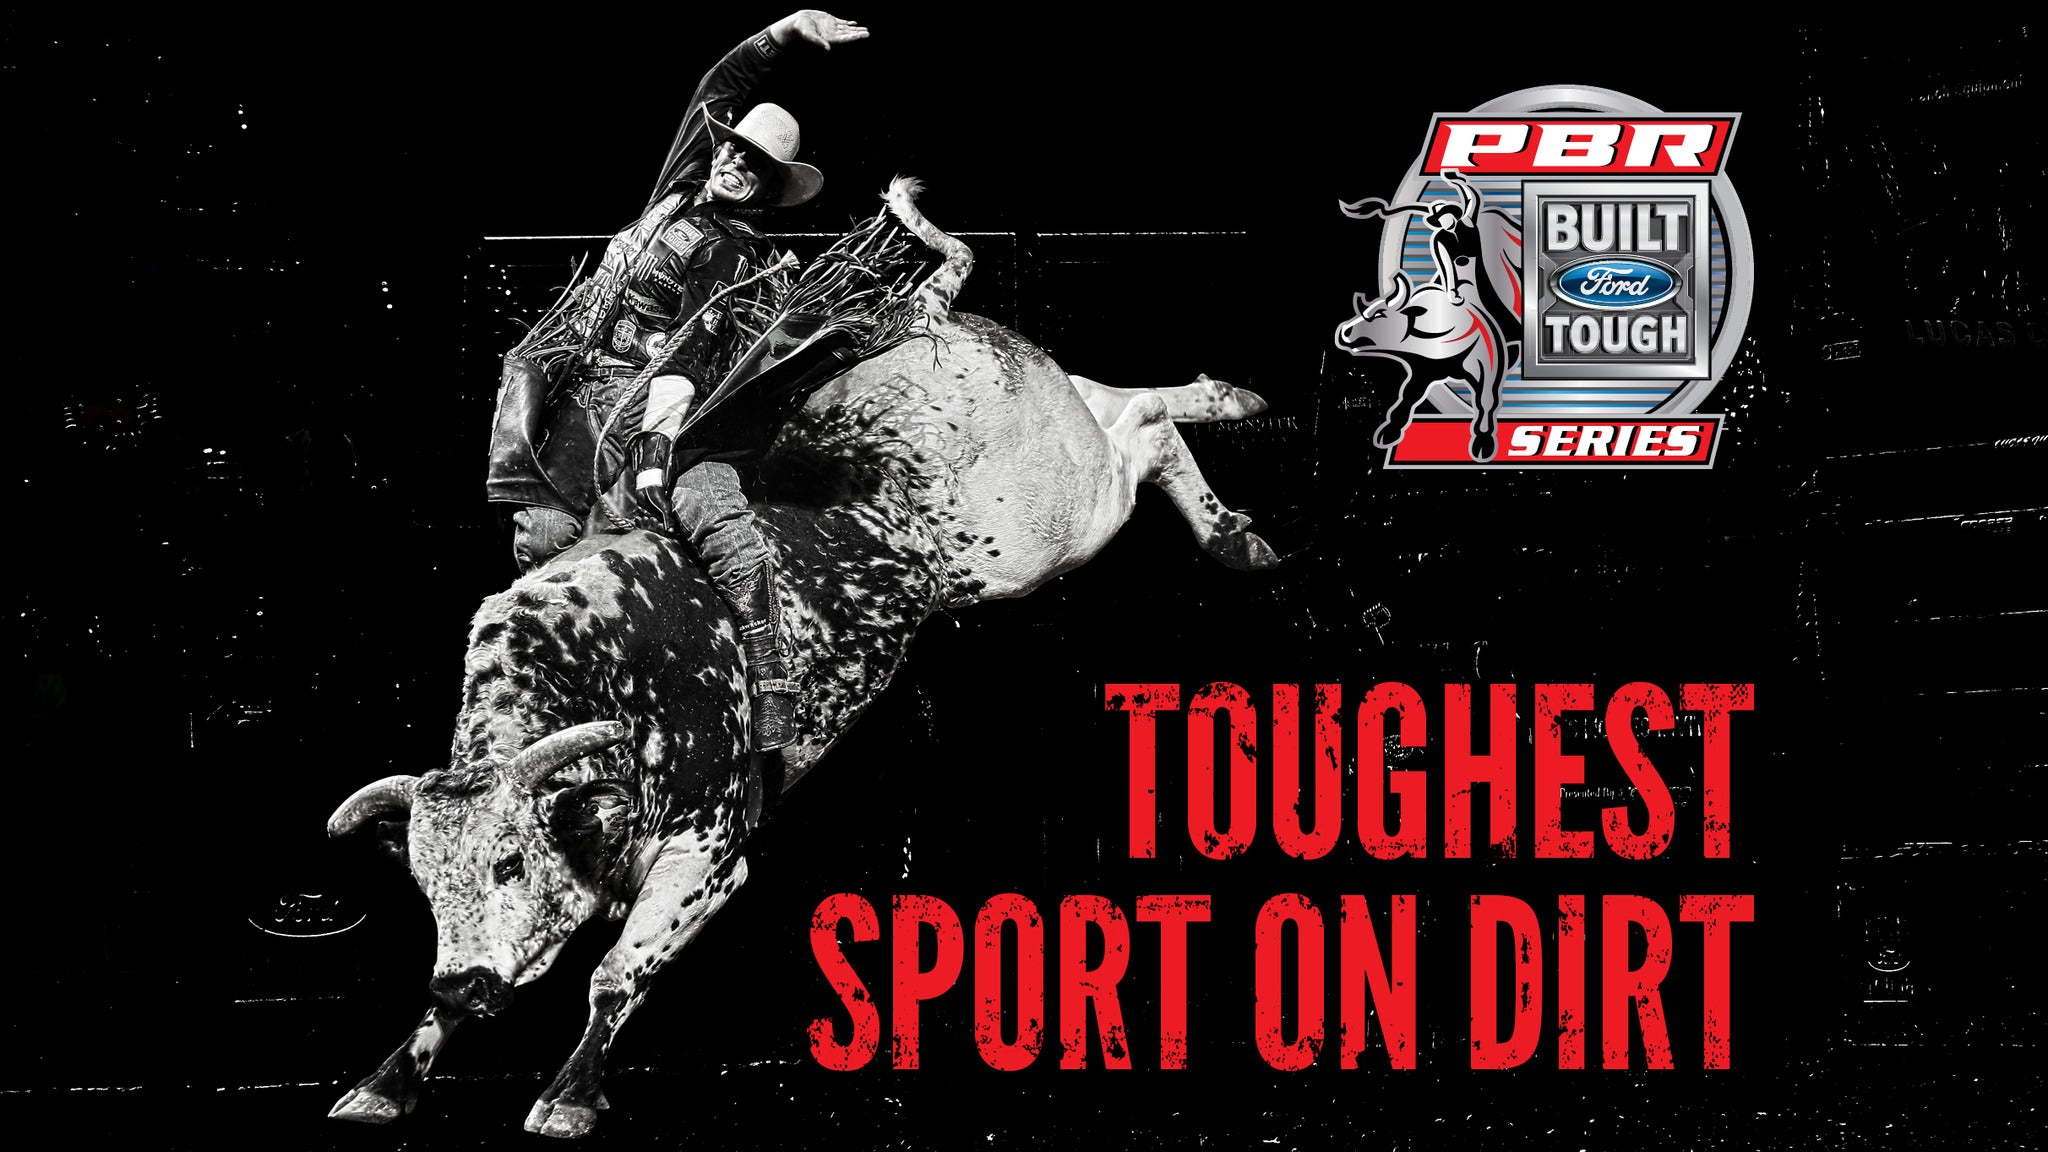 PBR: Built Ford Tough Series at SAP Center at San Jose